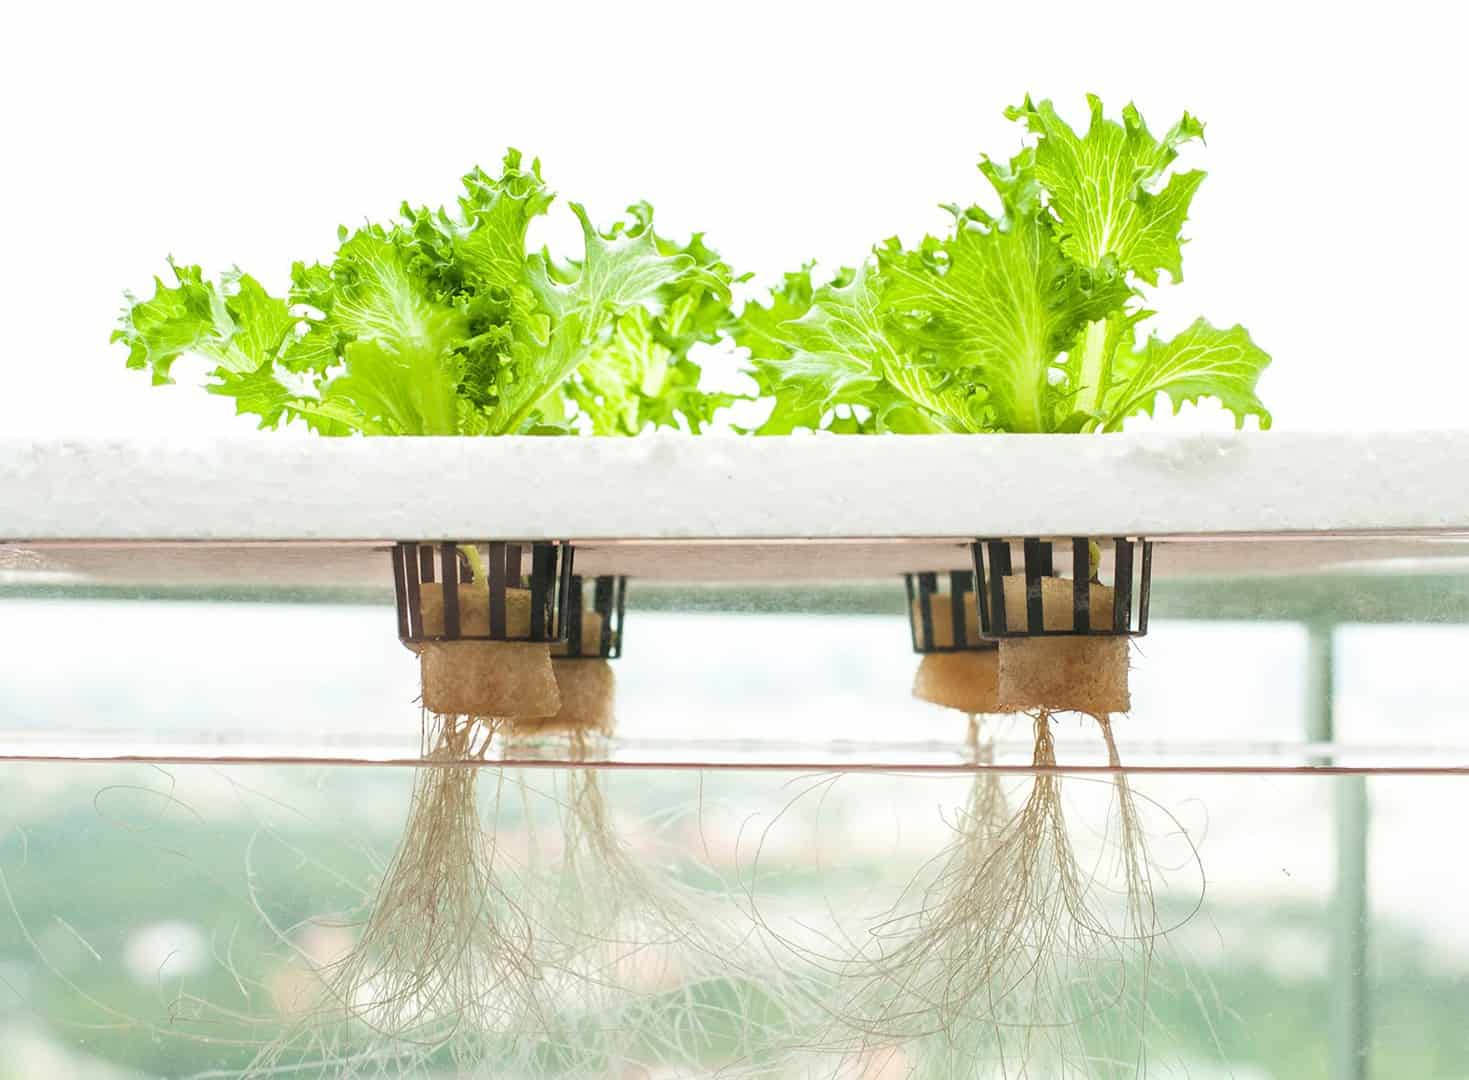 what is hydroponics and why is it a good idea?